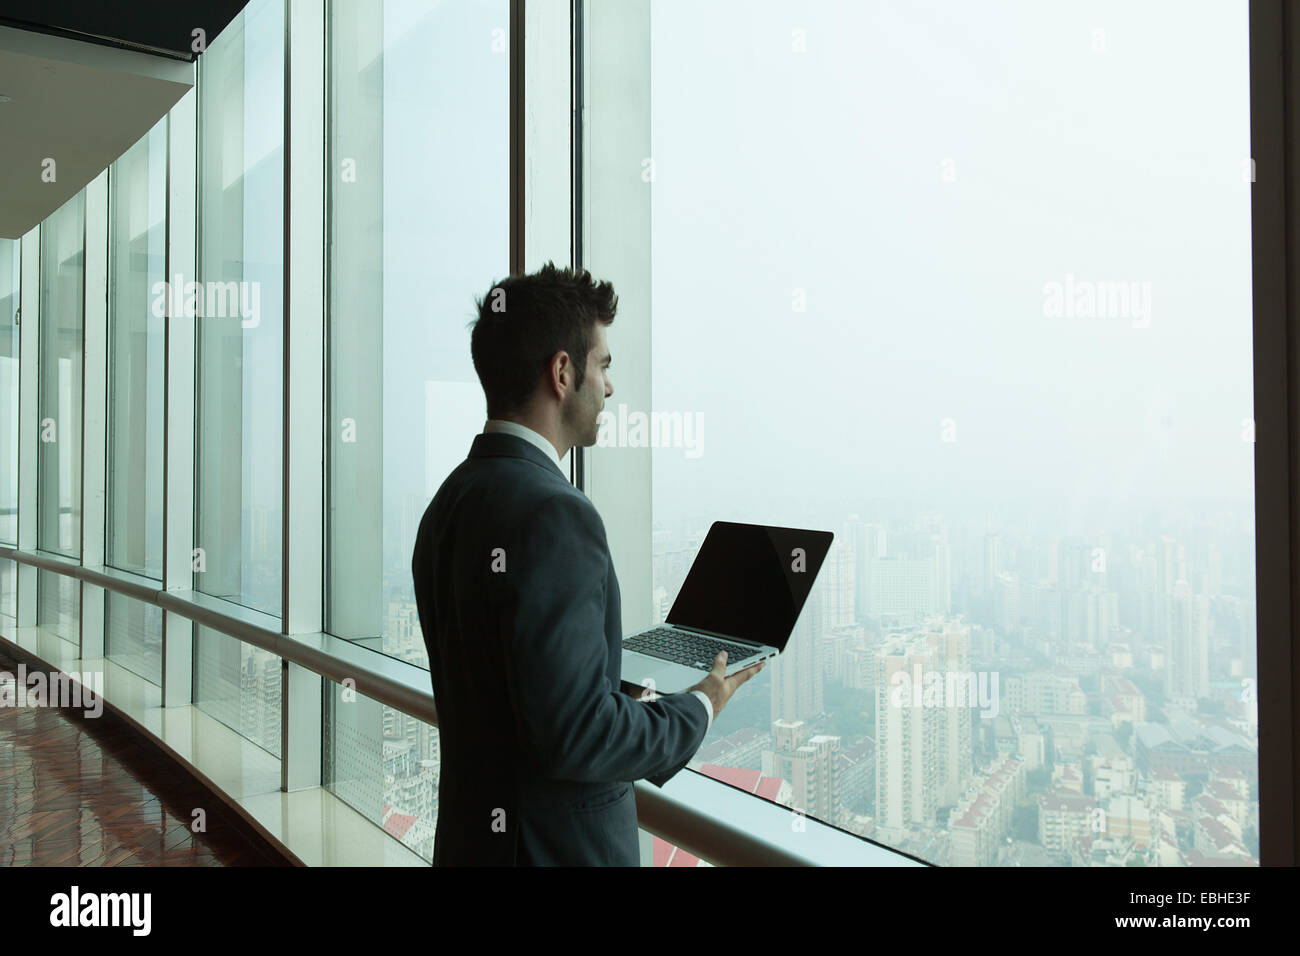 Young businessman with laptop looking out of skyscraper office window, Shanghai, China - Stock Image